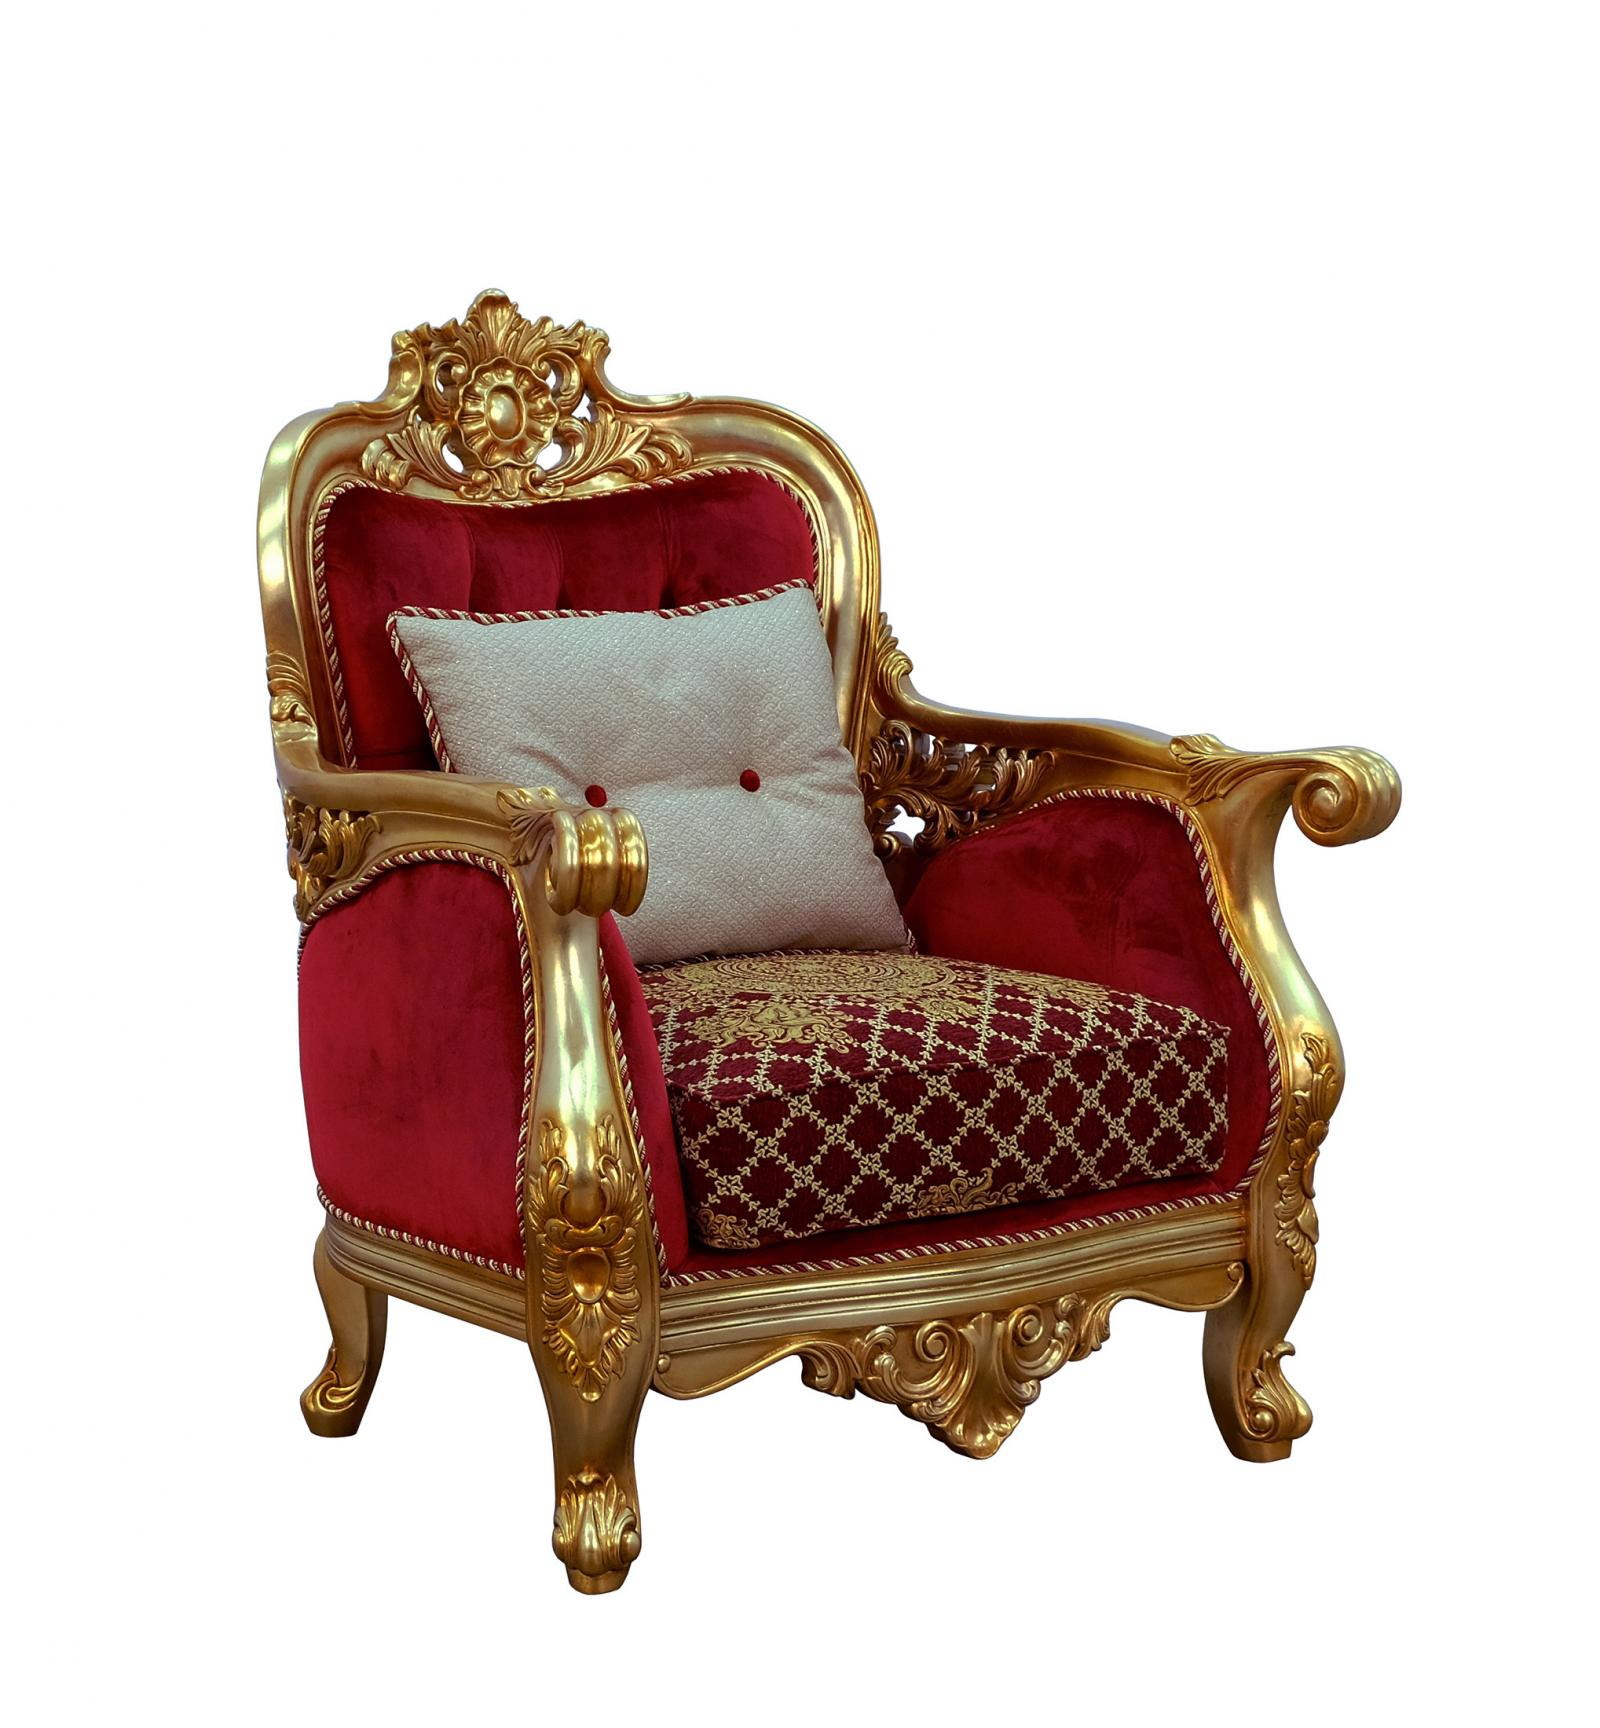 Classic  Traditional Gold  Antique   Red Wood  Solid Hardwood and Velvet Arm Chair EUROPEAN FURNITURE 30013-C